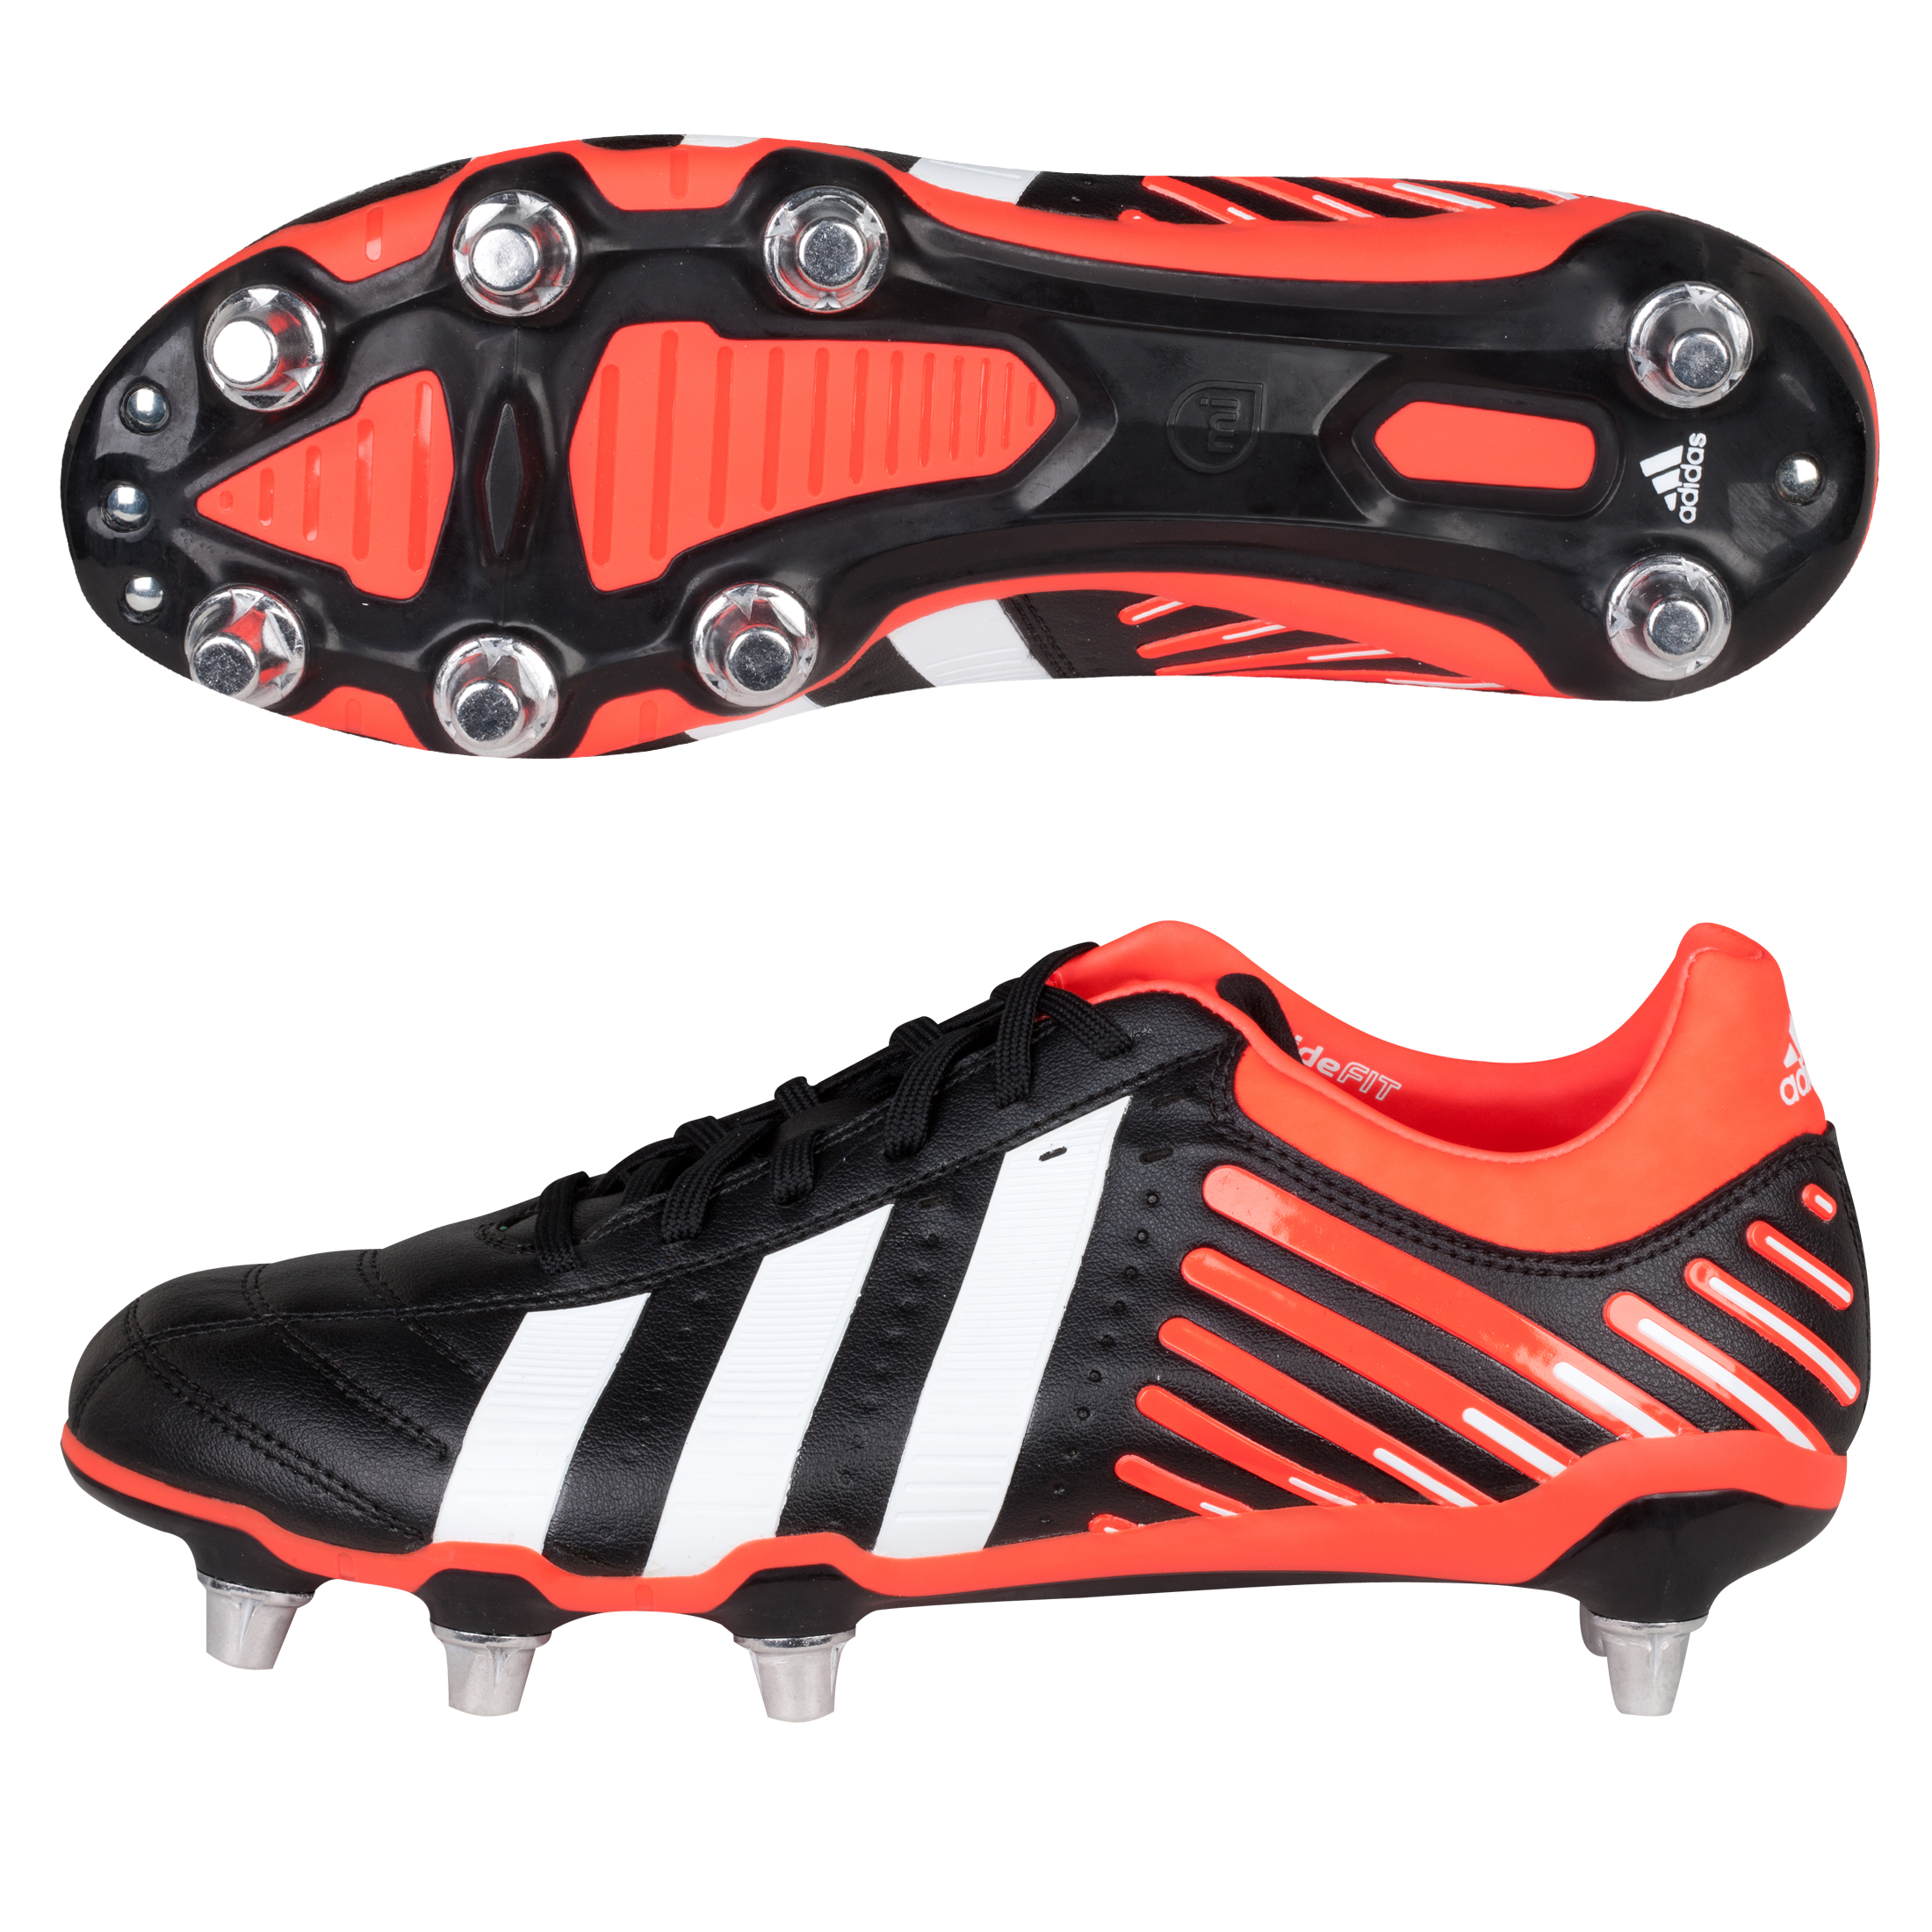 Adidas Adipower Kakari Soft Ground Rugby Boots - Black/White/Infrared